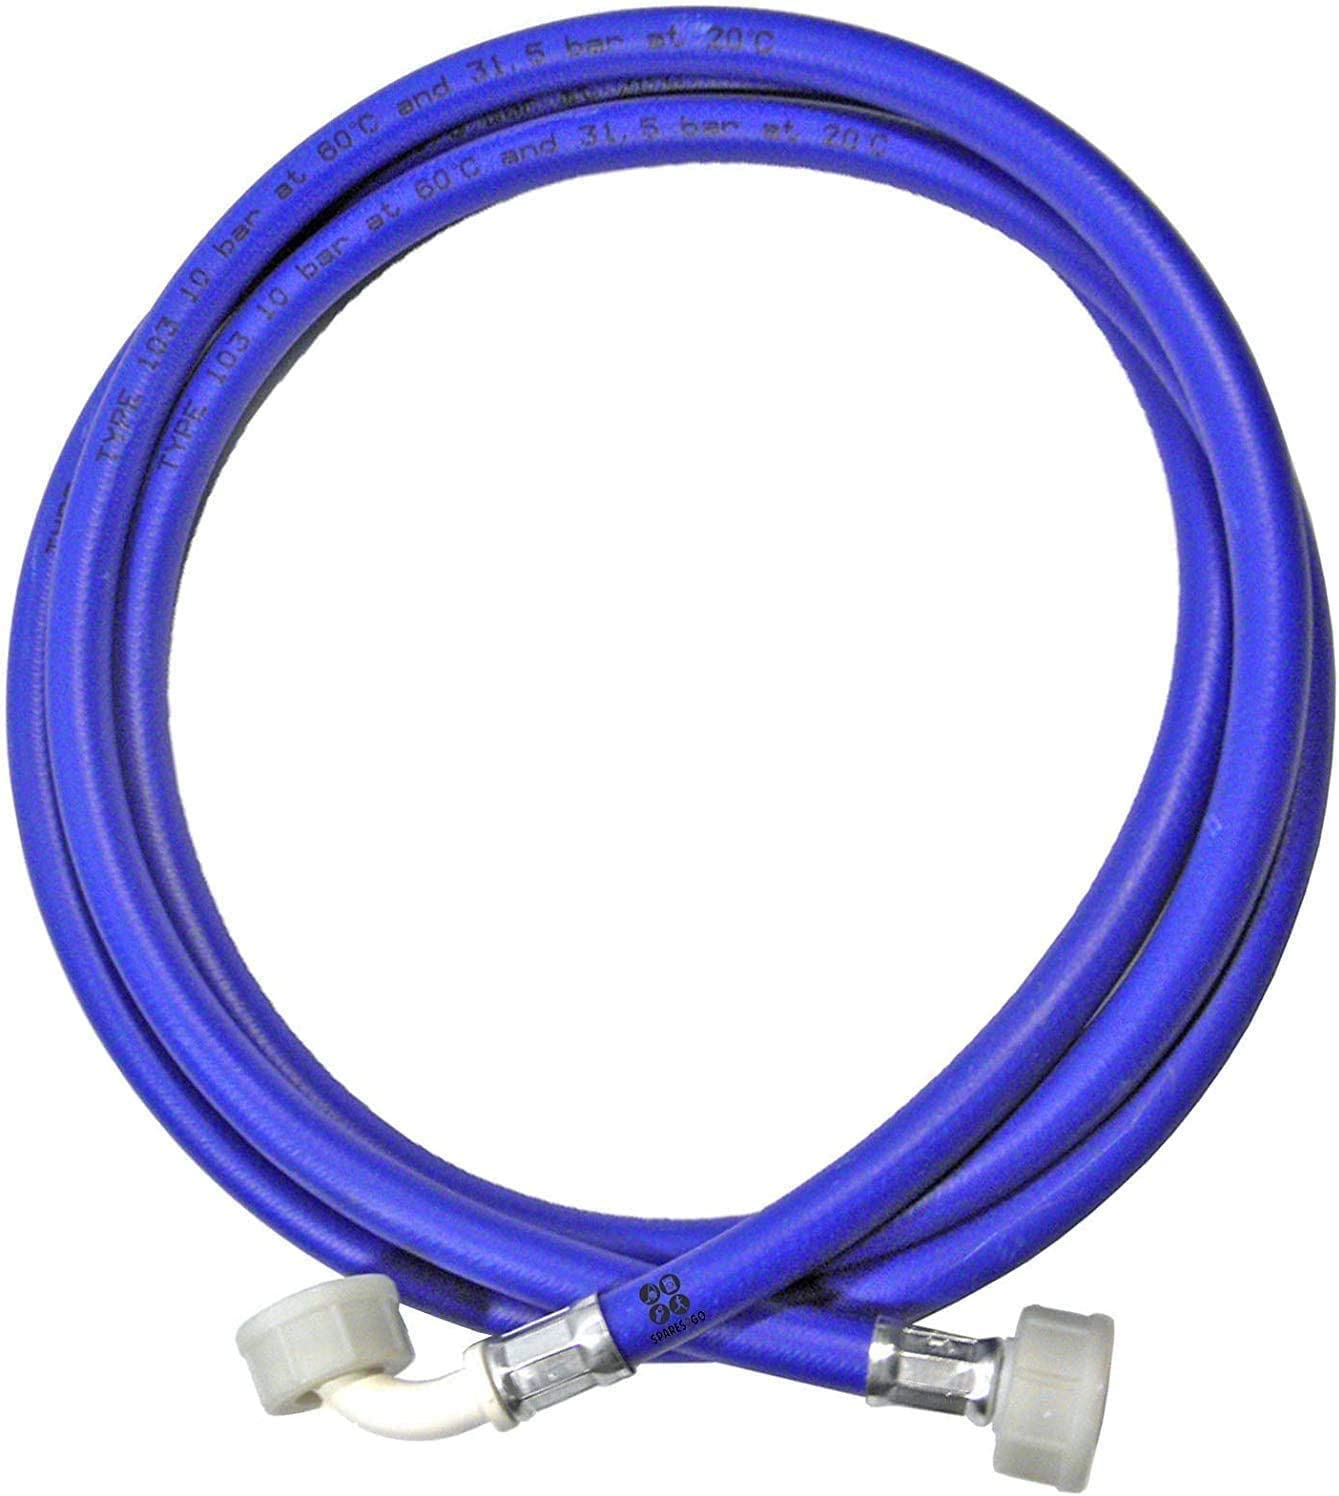 ABC Products Universal Washing Machine Cold Water Fill Inlet Pipe Feed Hose Long (3.5m/11.5 Feet)